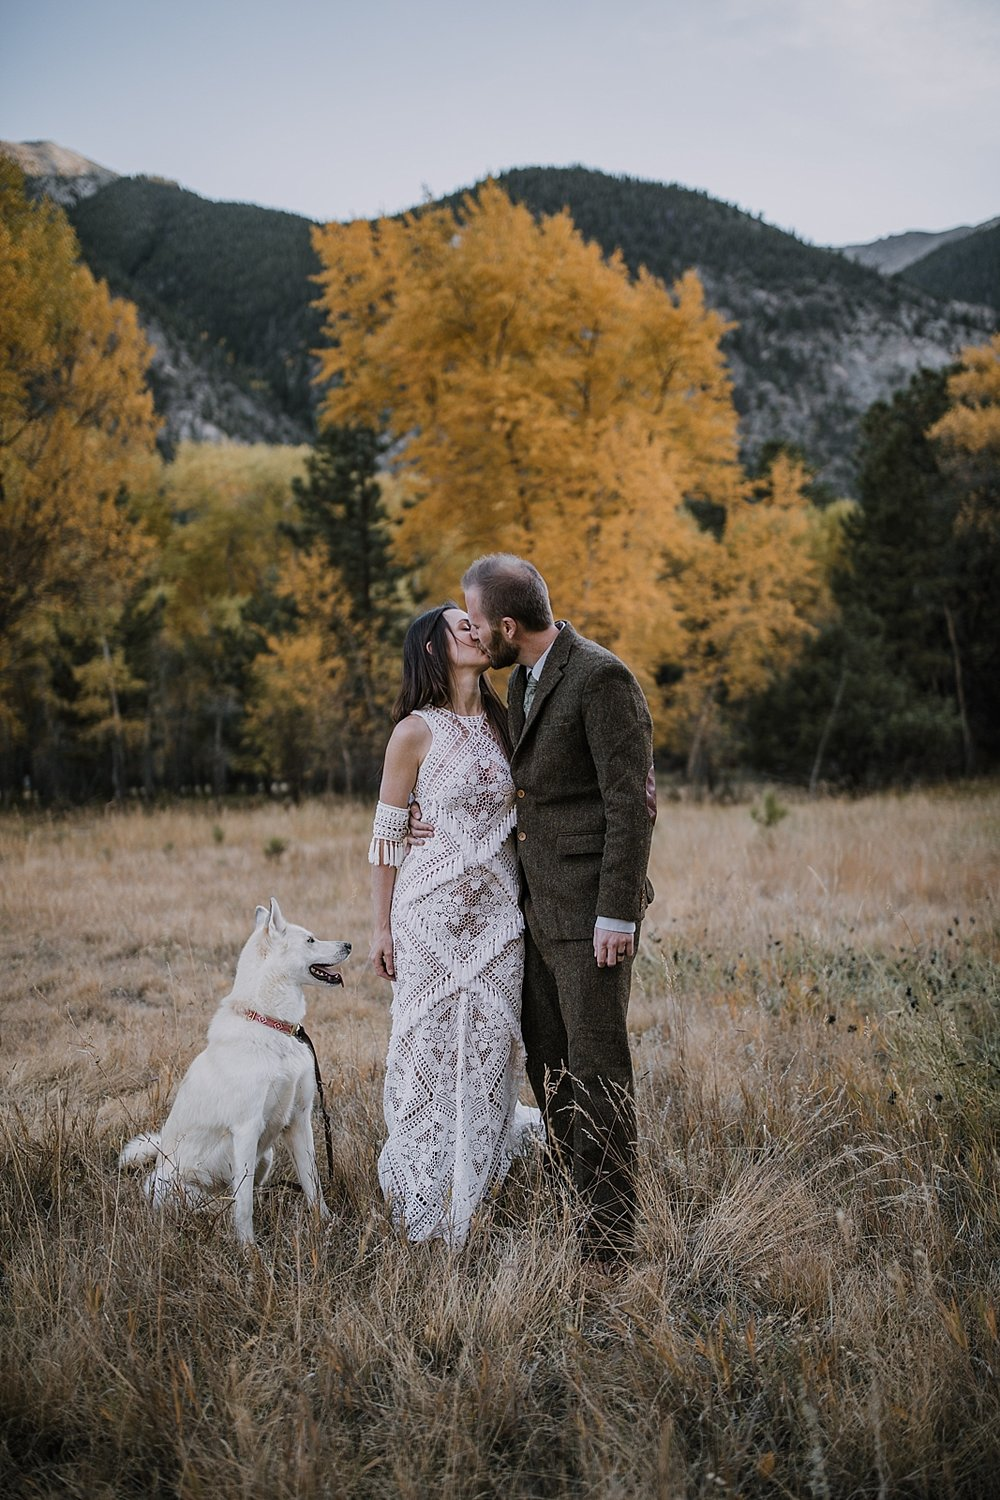 blue eyed husky, couple hiking, norway elopement, post elopement celebration, wedding in the woods, buena vista elopement, buena vista wedding, nathrop colorado wedding, elope with your dog